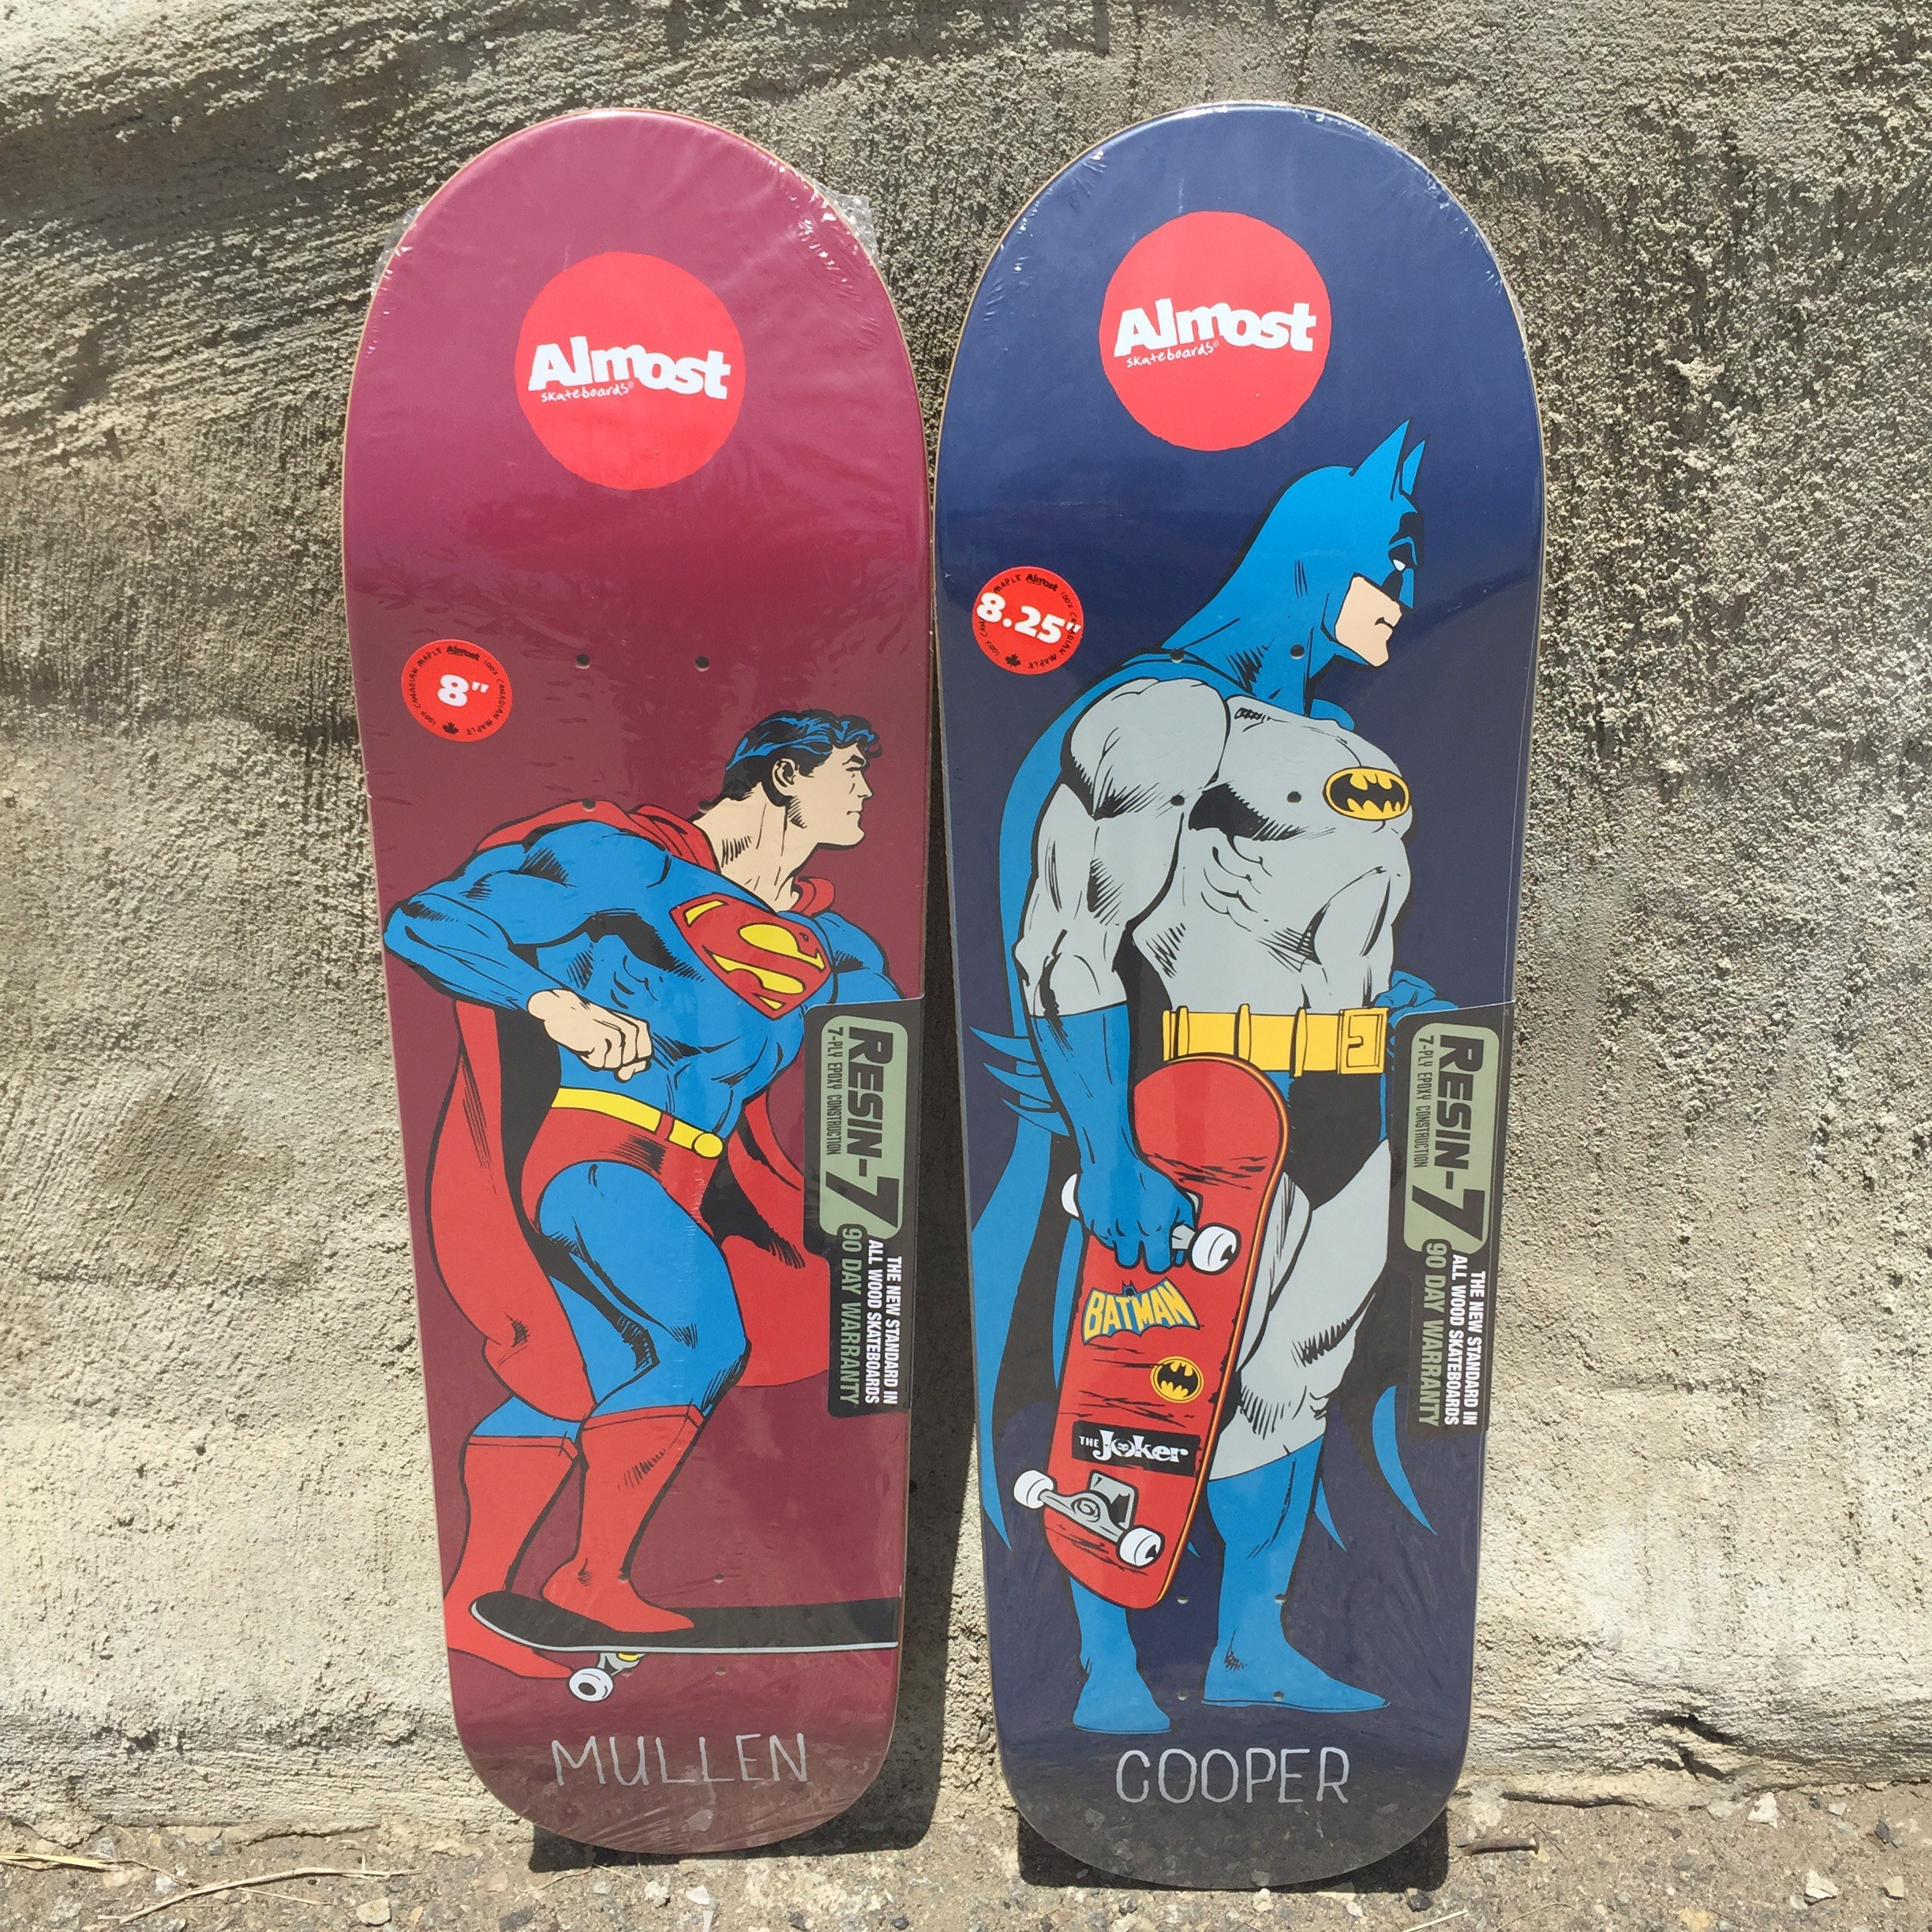 Almost Superman Mongo and Batman Mall grab (8.0 x 31.7, 14.25 wb; 8.25 x 31.7, 14.25 wb)